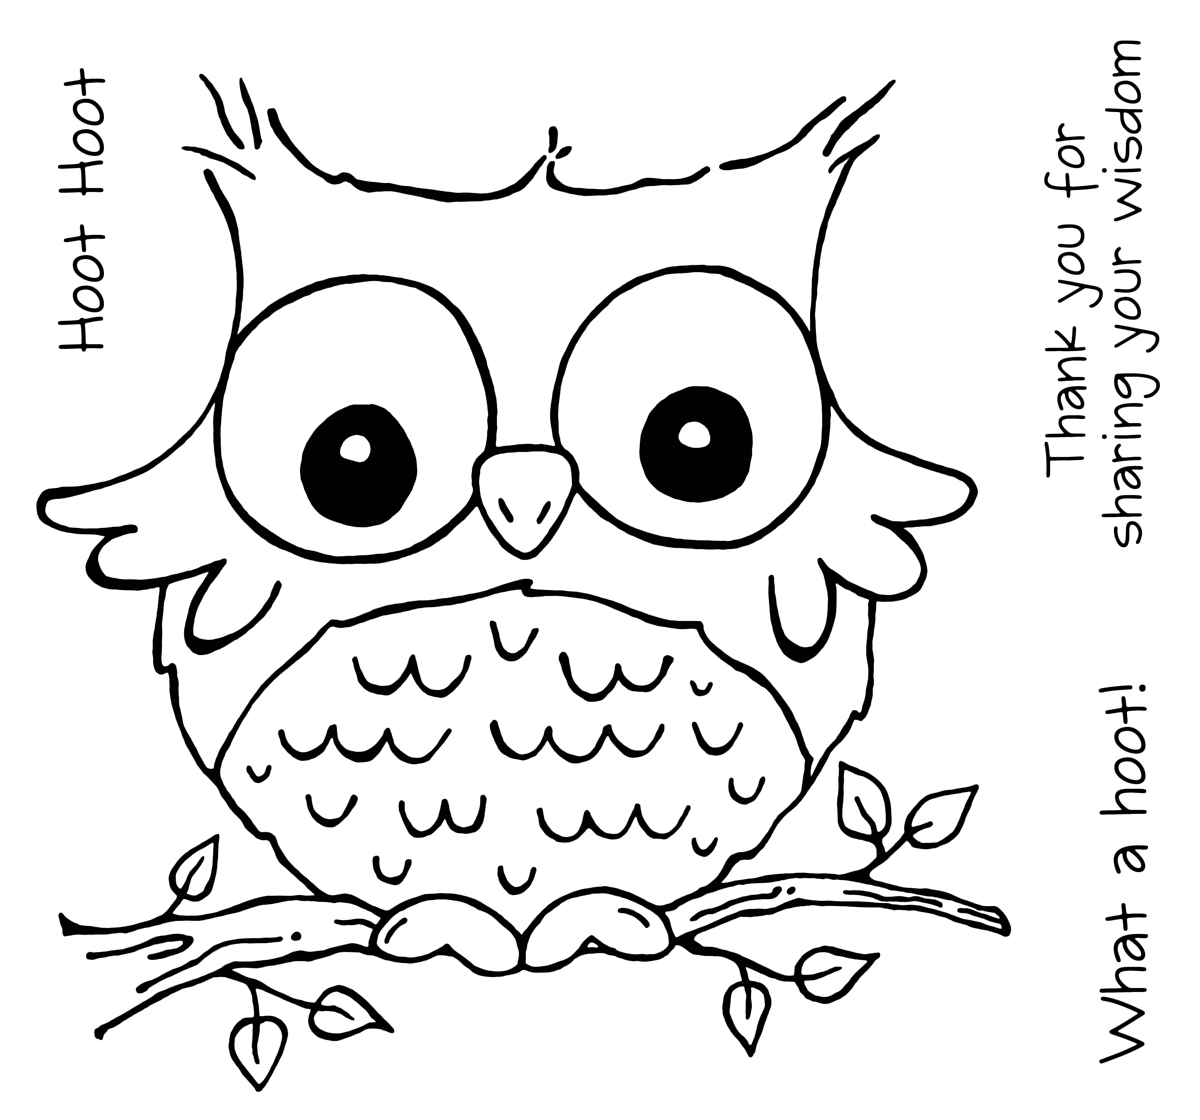 The stamp man new woodware spring stamp designs now for Cute coloring pages of owls